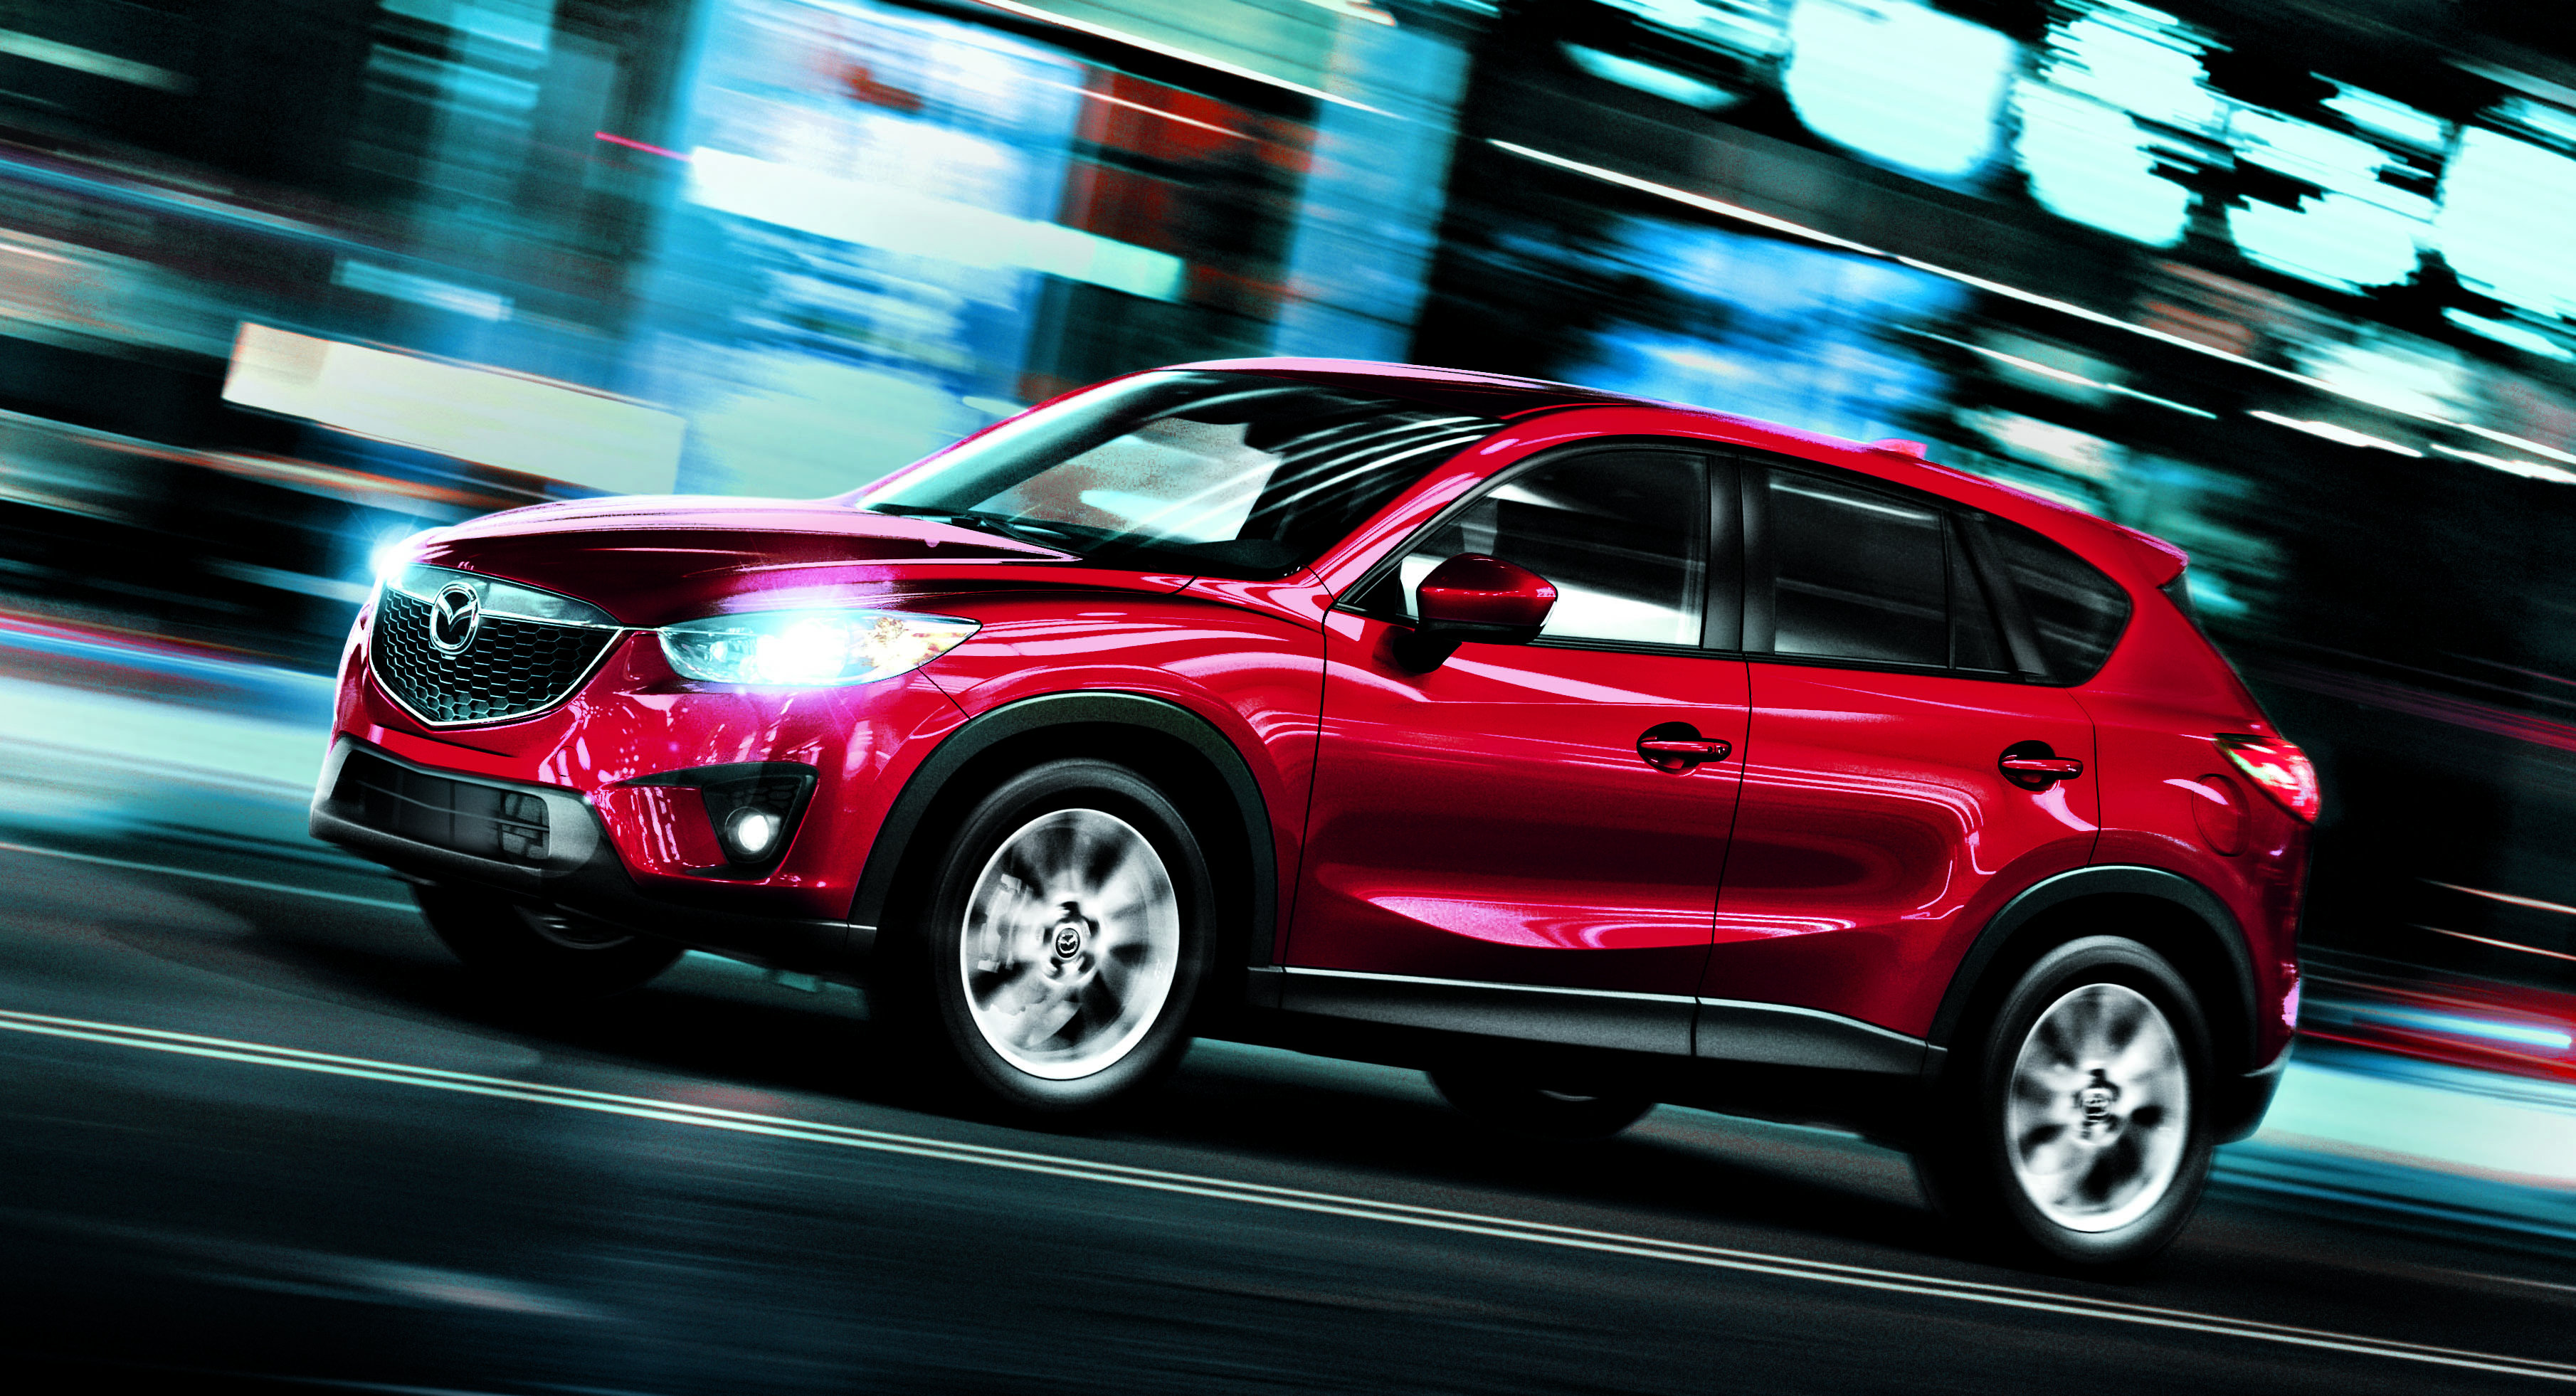 bountiful mazda is excited about the all new 2015 mazda cx 5 being